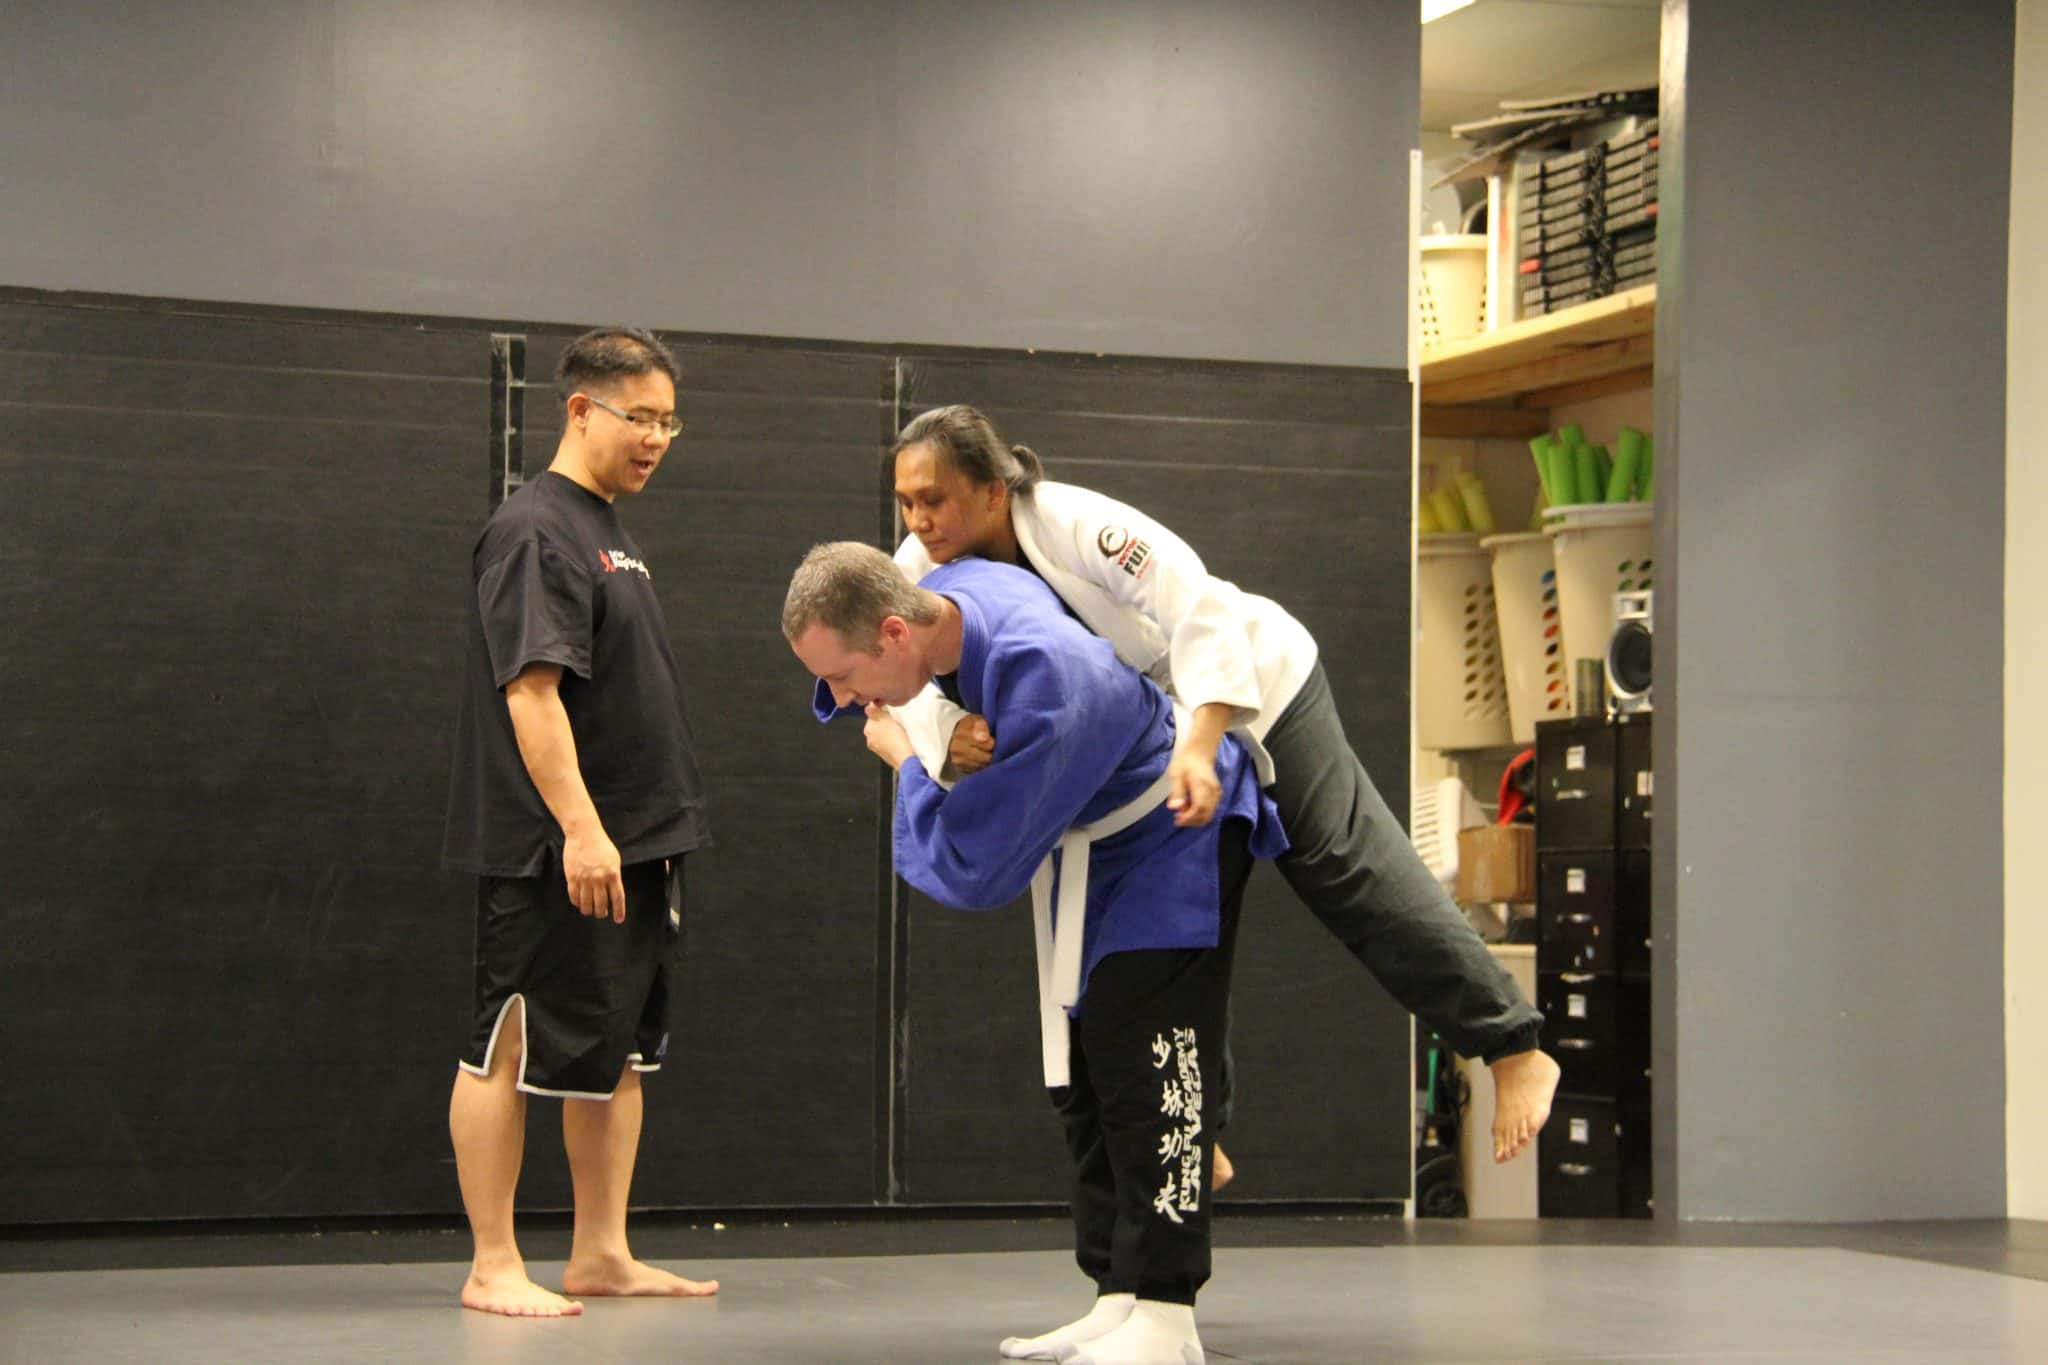 Instructor Kevin Teaching a private lesson